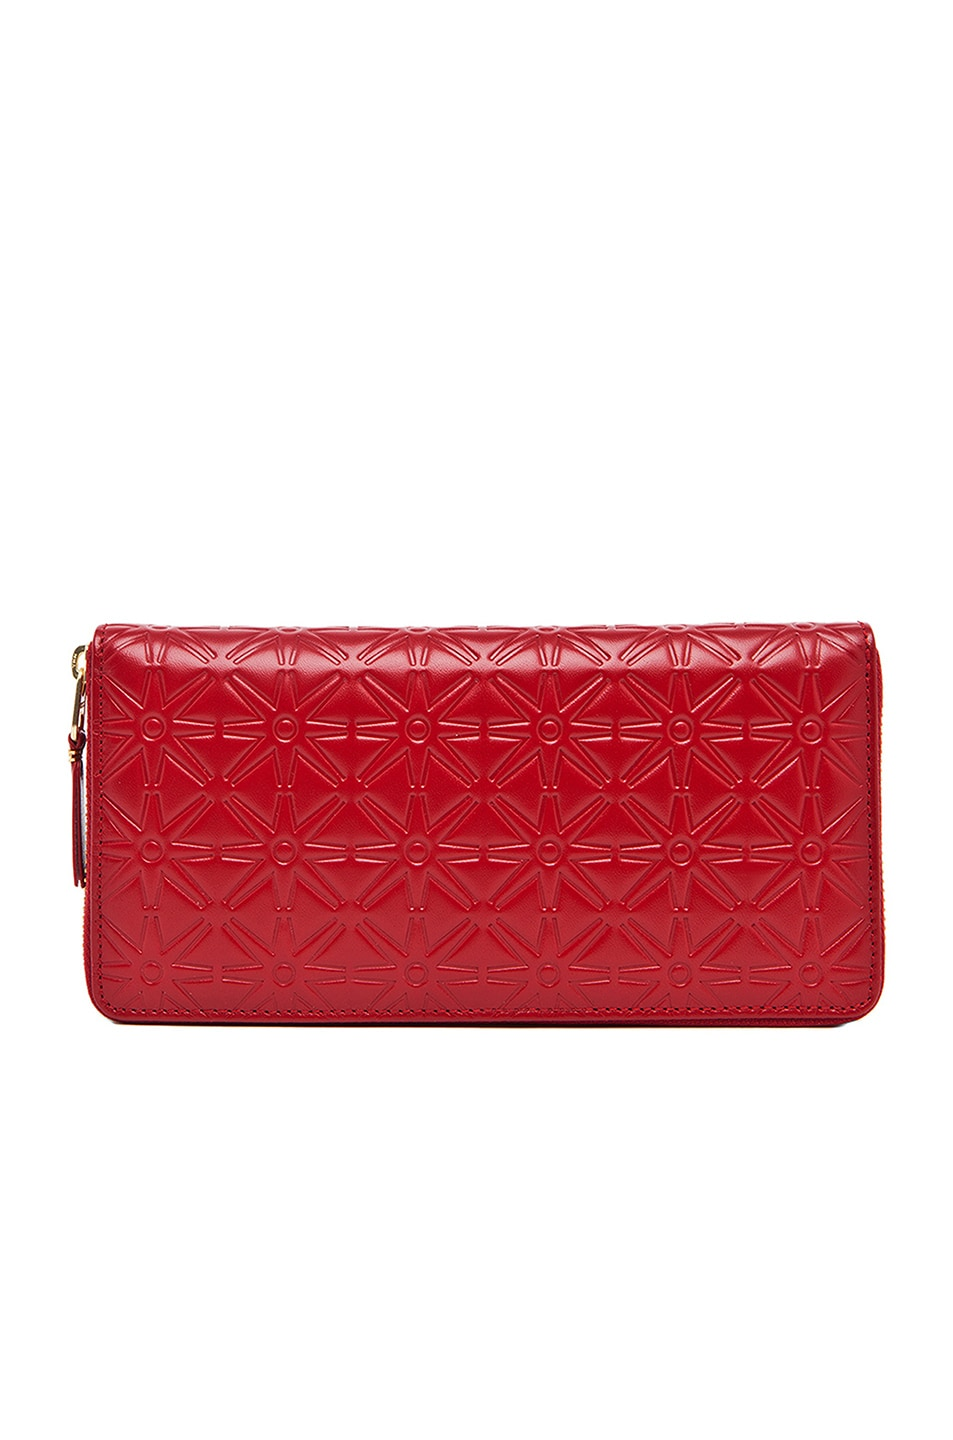 COMME DES GARCONS STAR EMBOSSED LONG WALLET IN WARM TONES